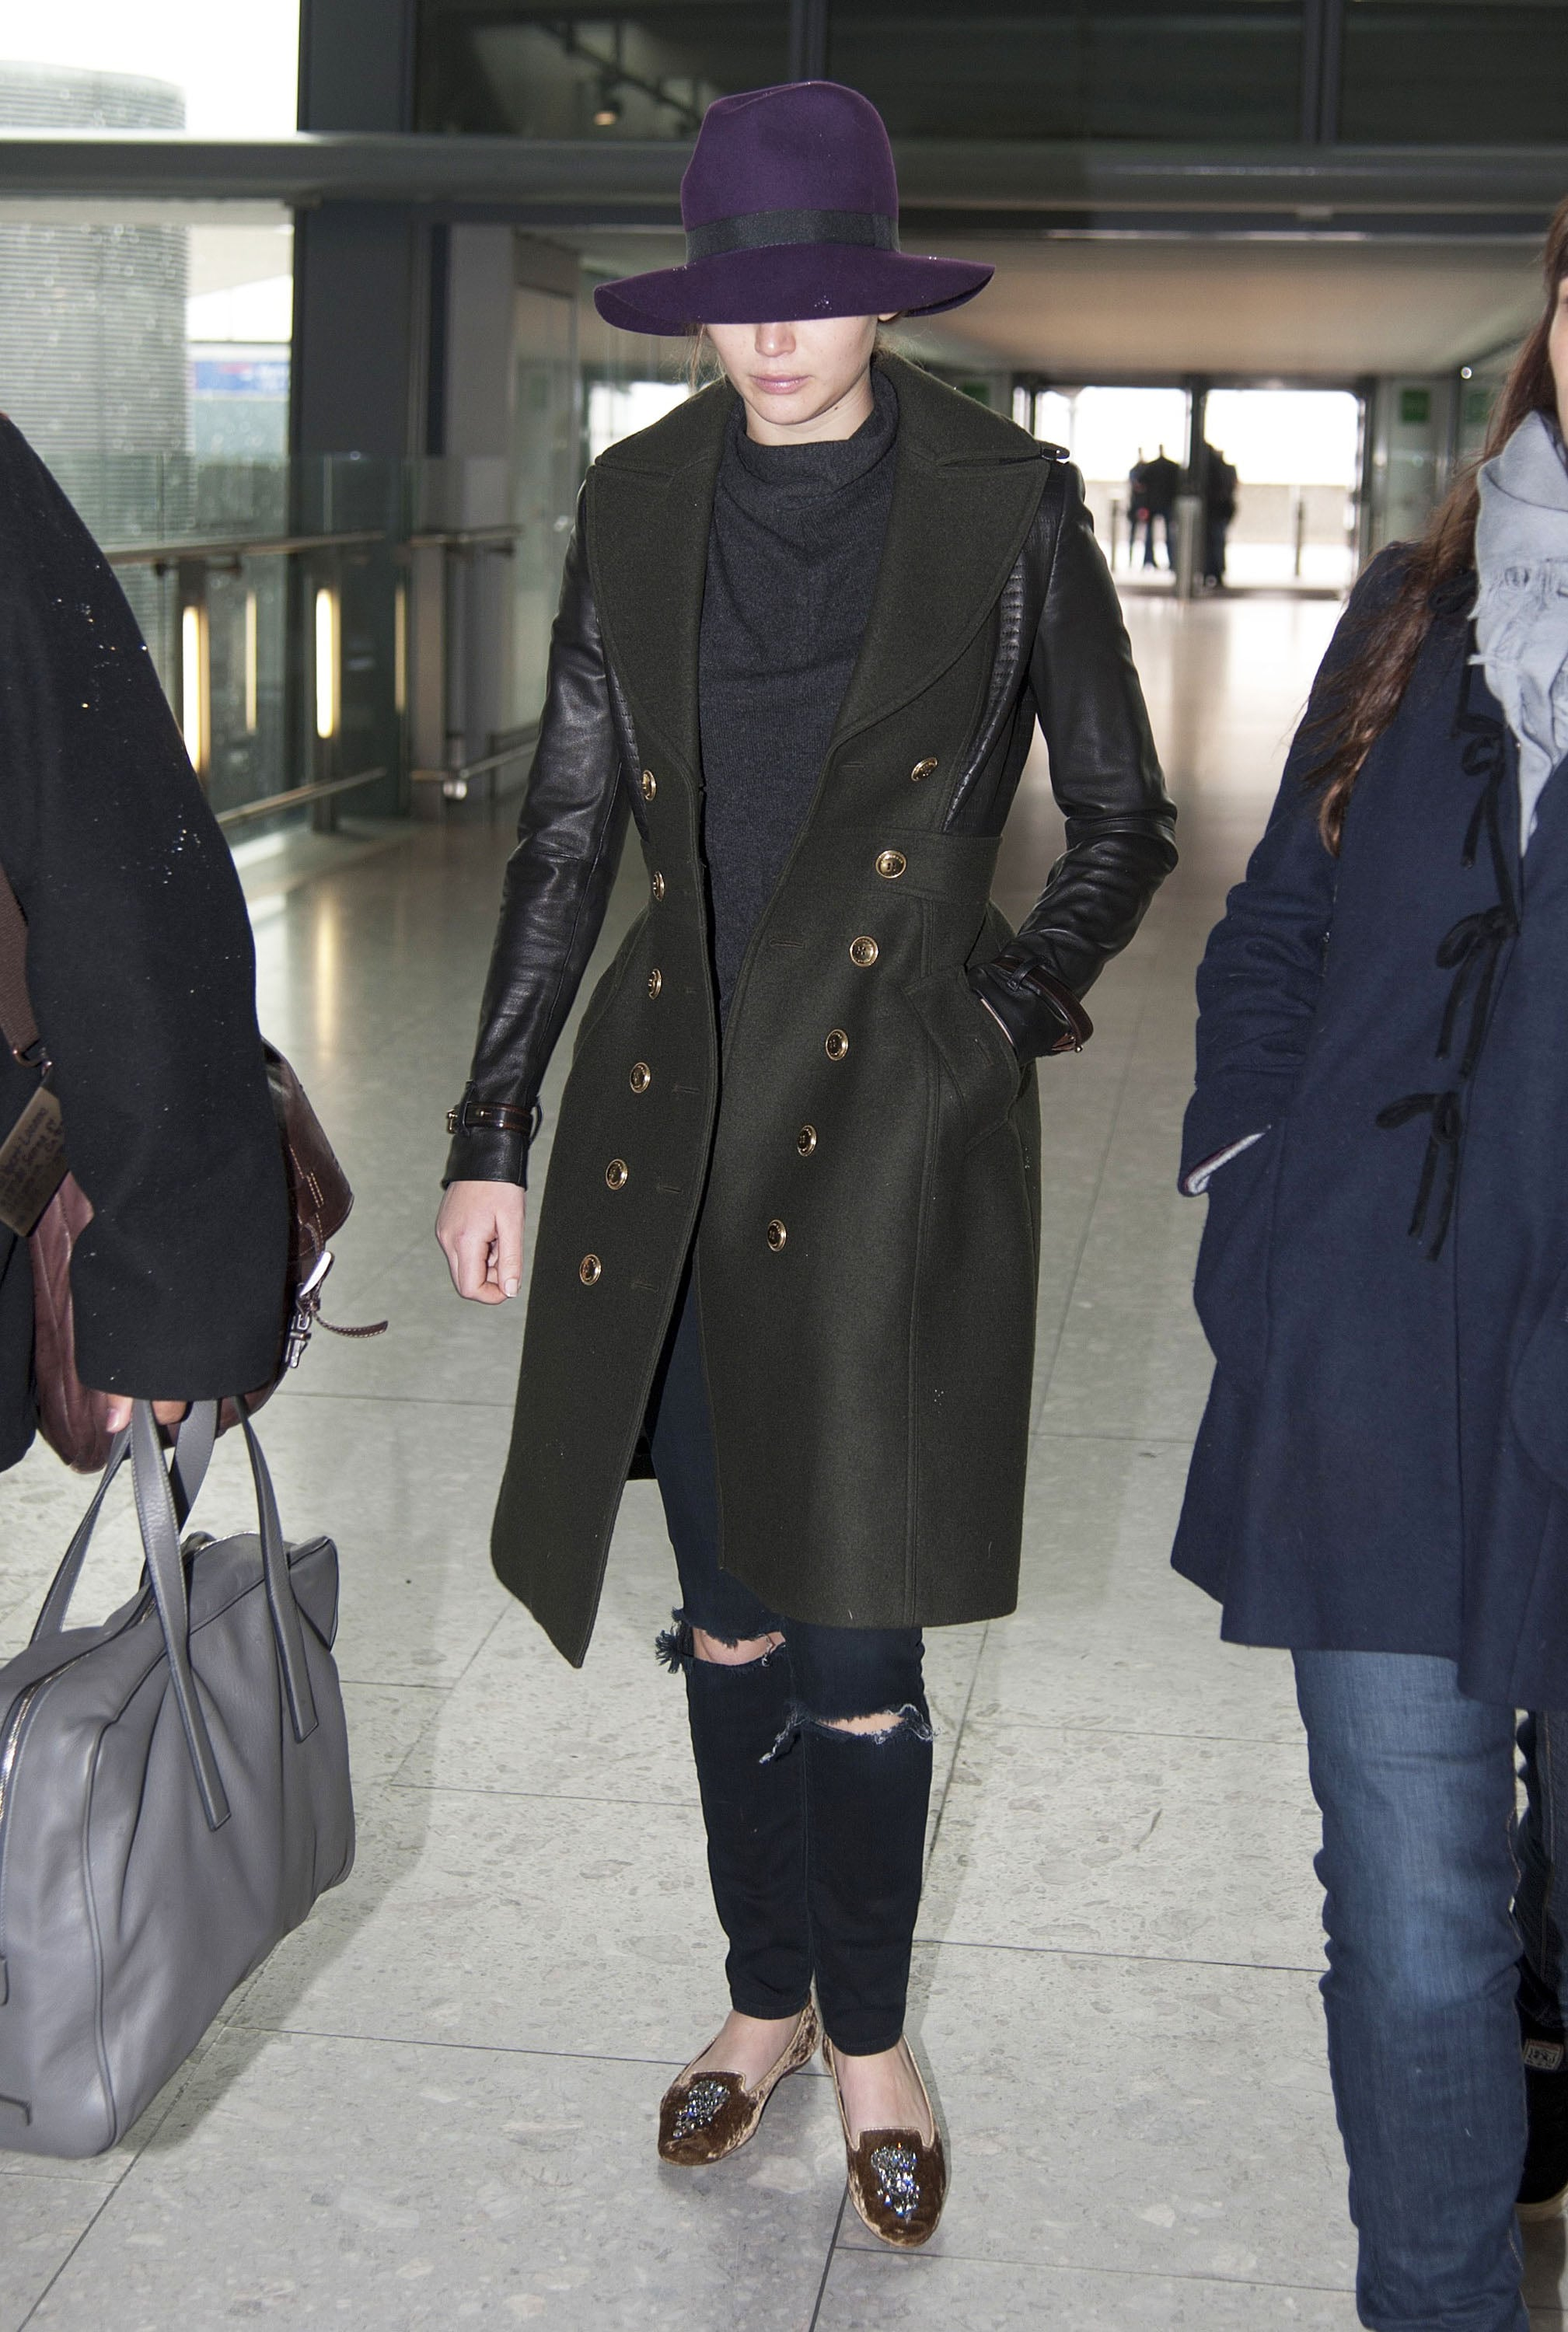 Jennifer Lawrence Gets the Giggles While Flying Home With Her Teddy